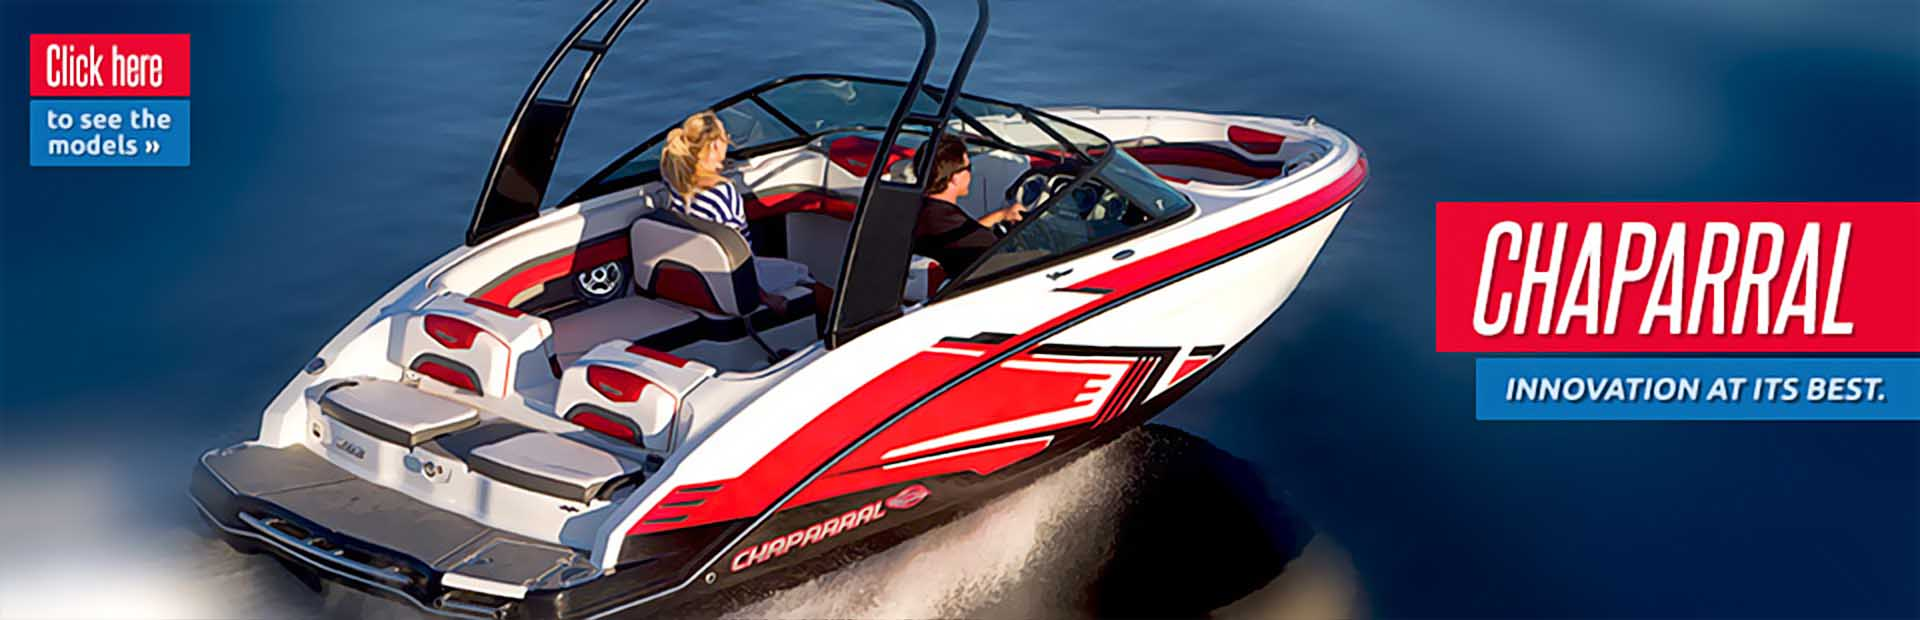 Click here to view Chaparral boats.